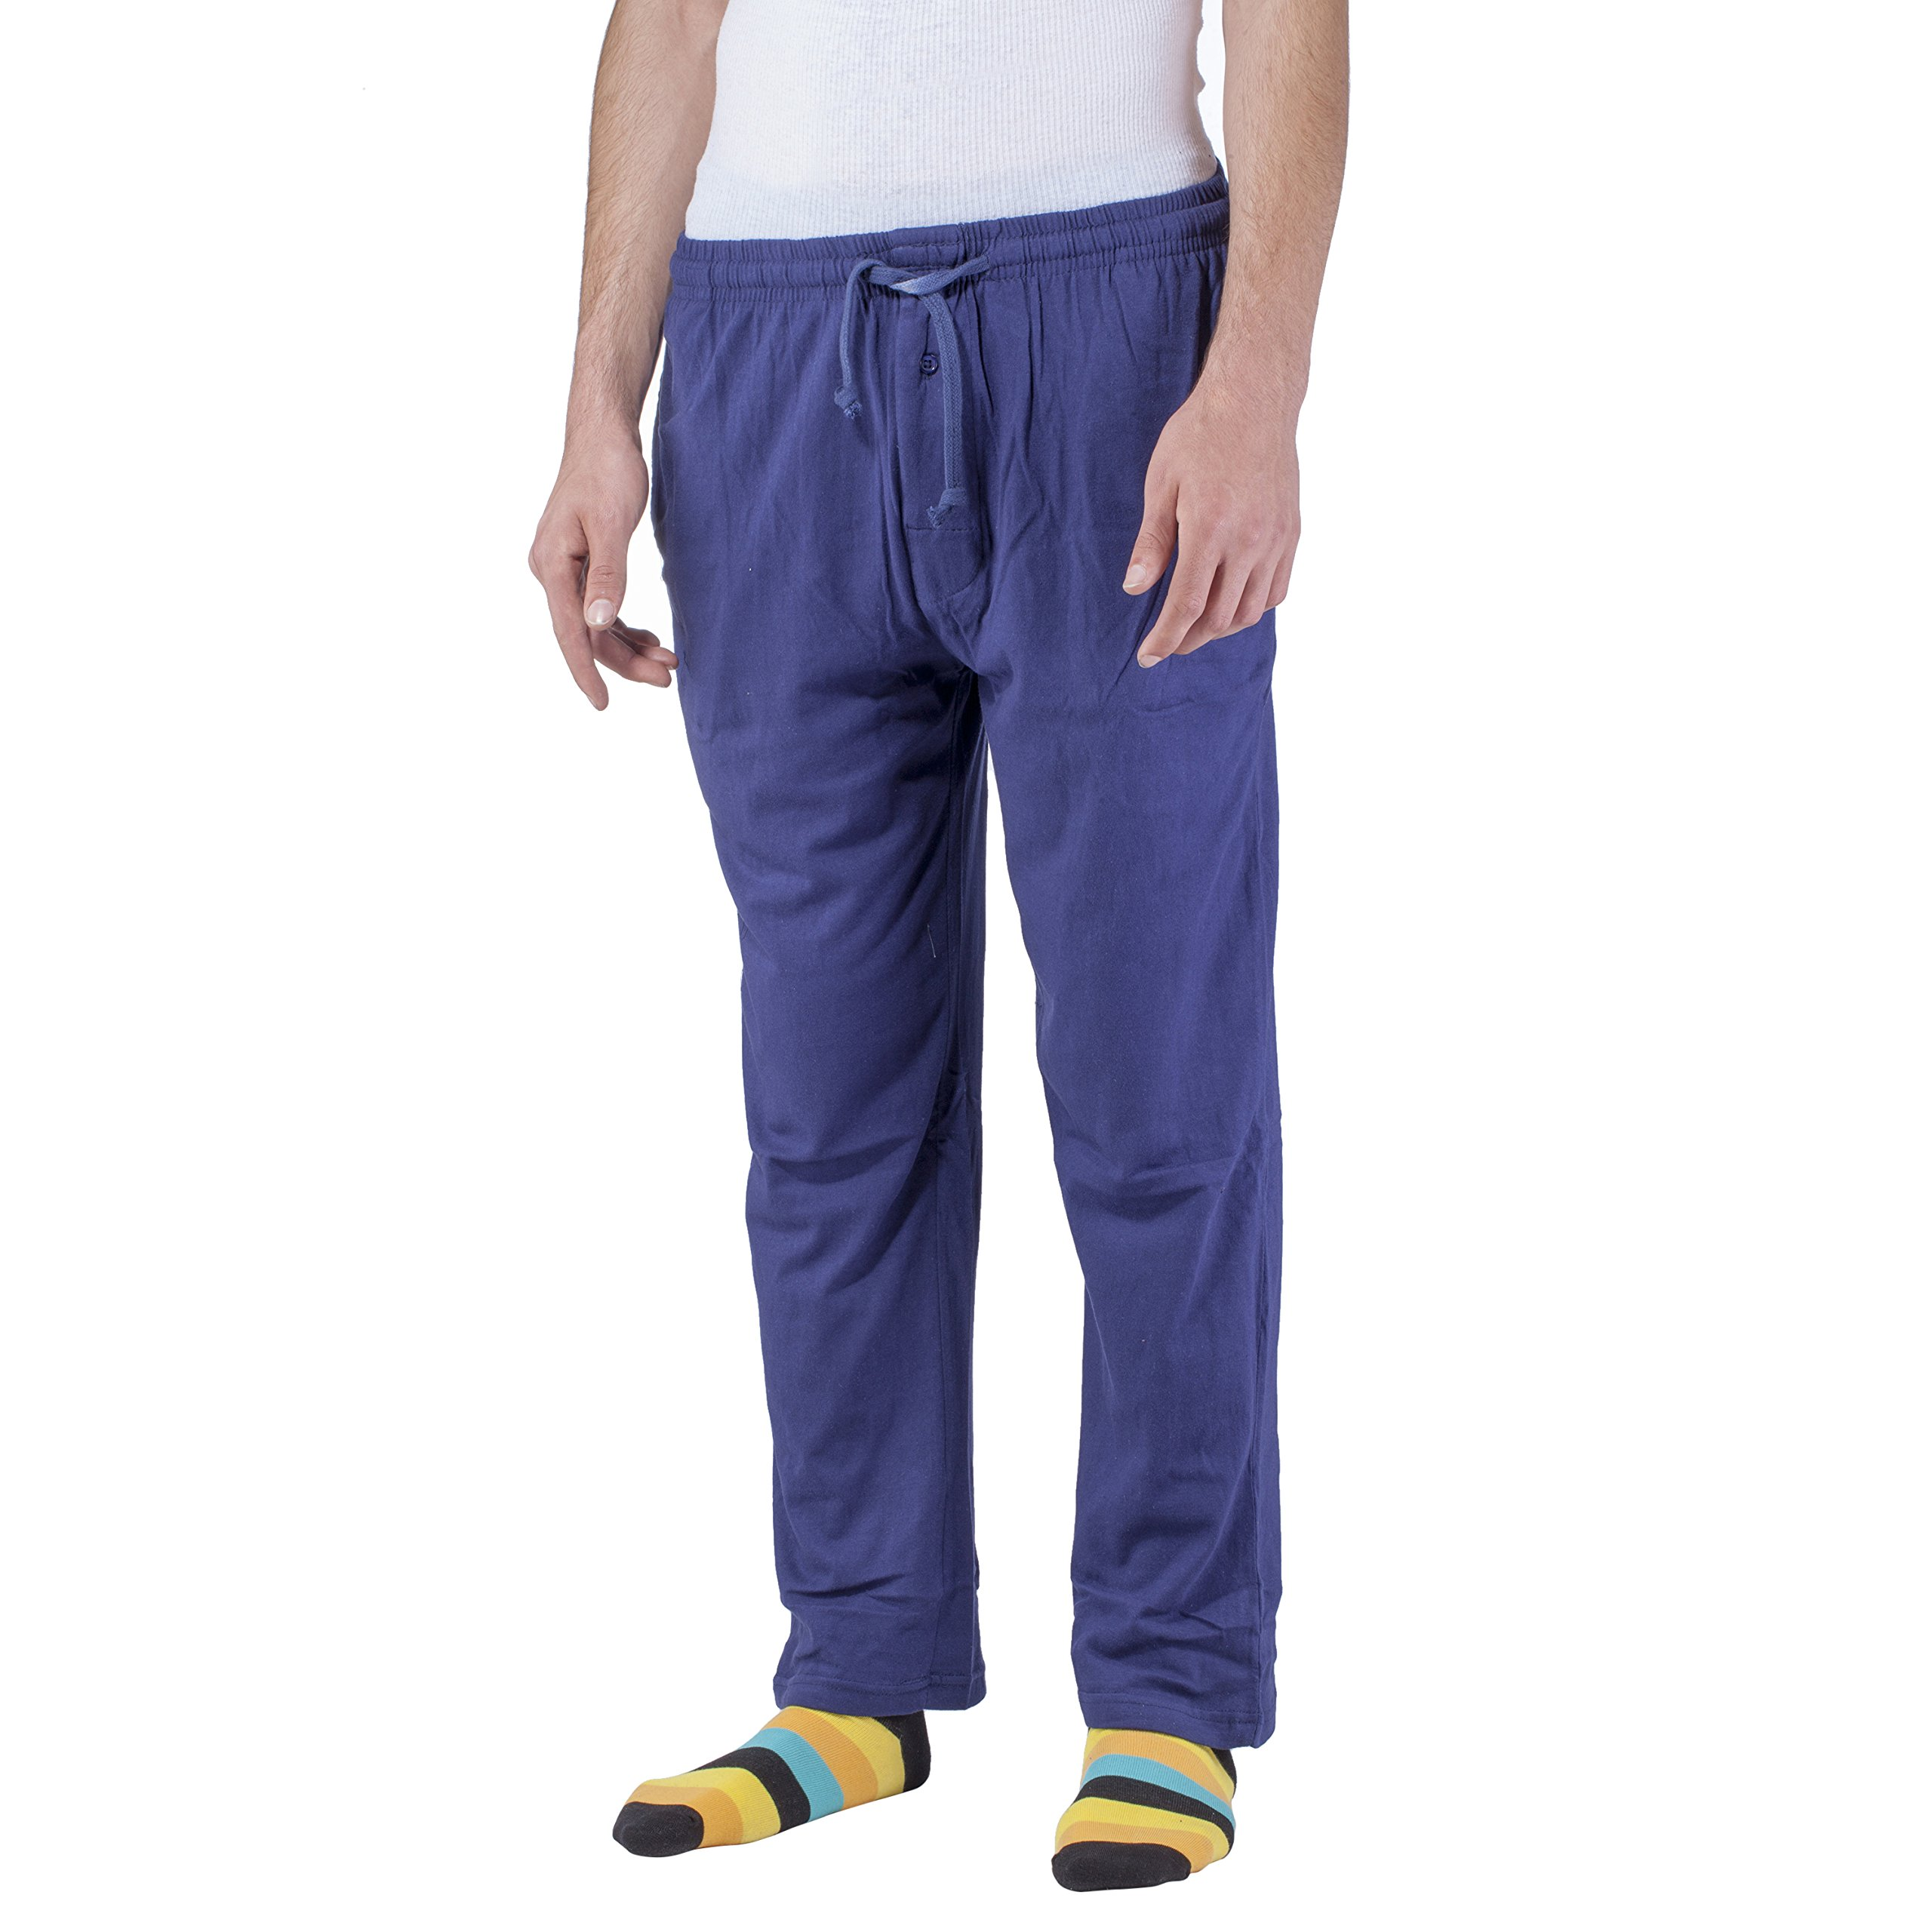 Arctic Pole Men's Jersey Knit Pajama/Lounge Pants - 100% Cotton - Side Pockets - Adjustable Waist with Drawstring - Navy -Medium